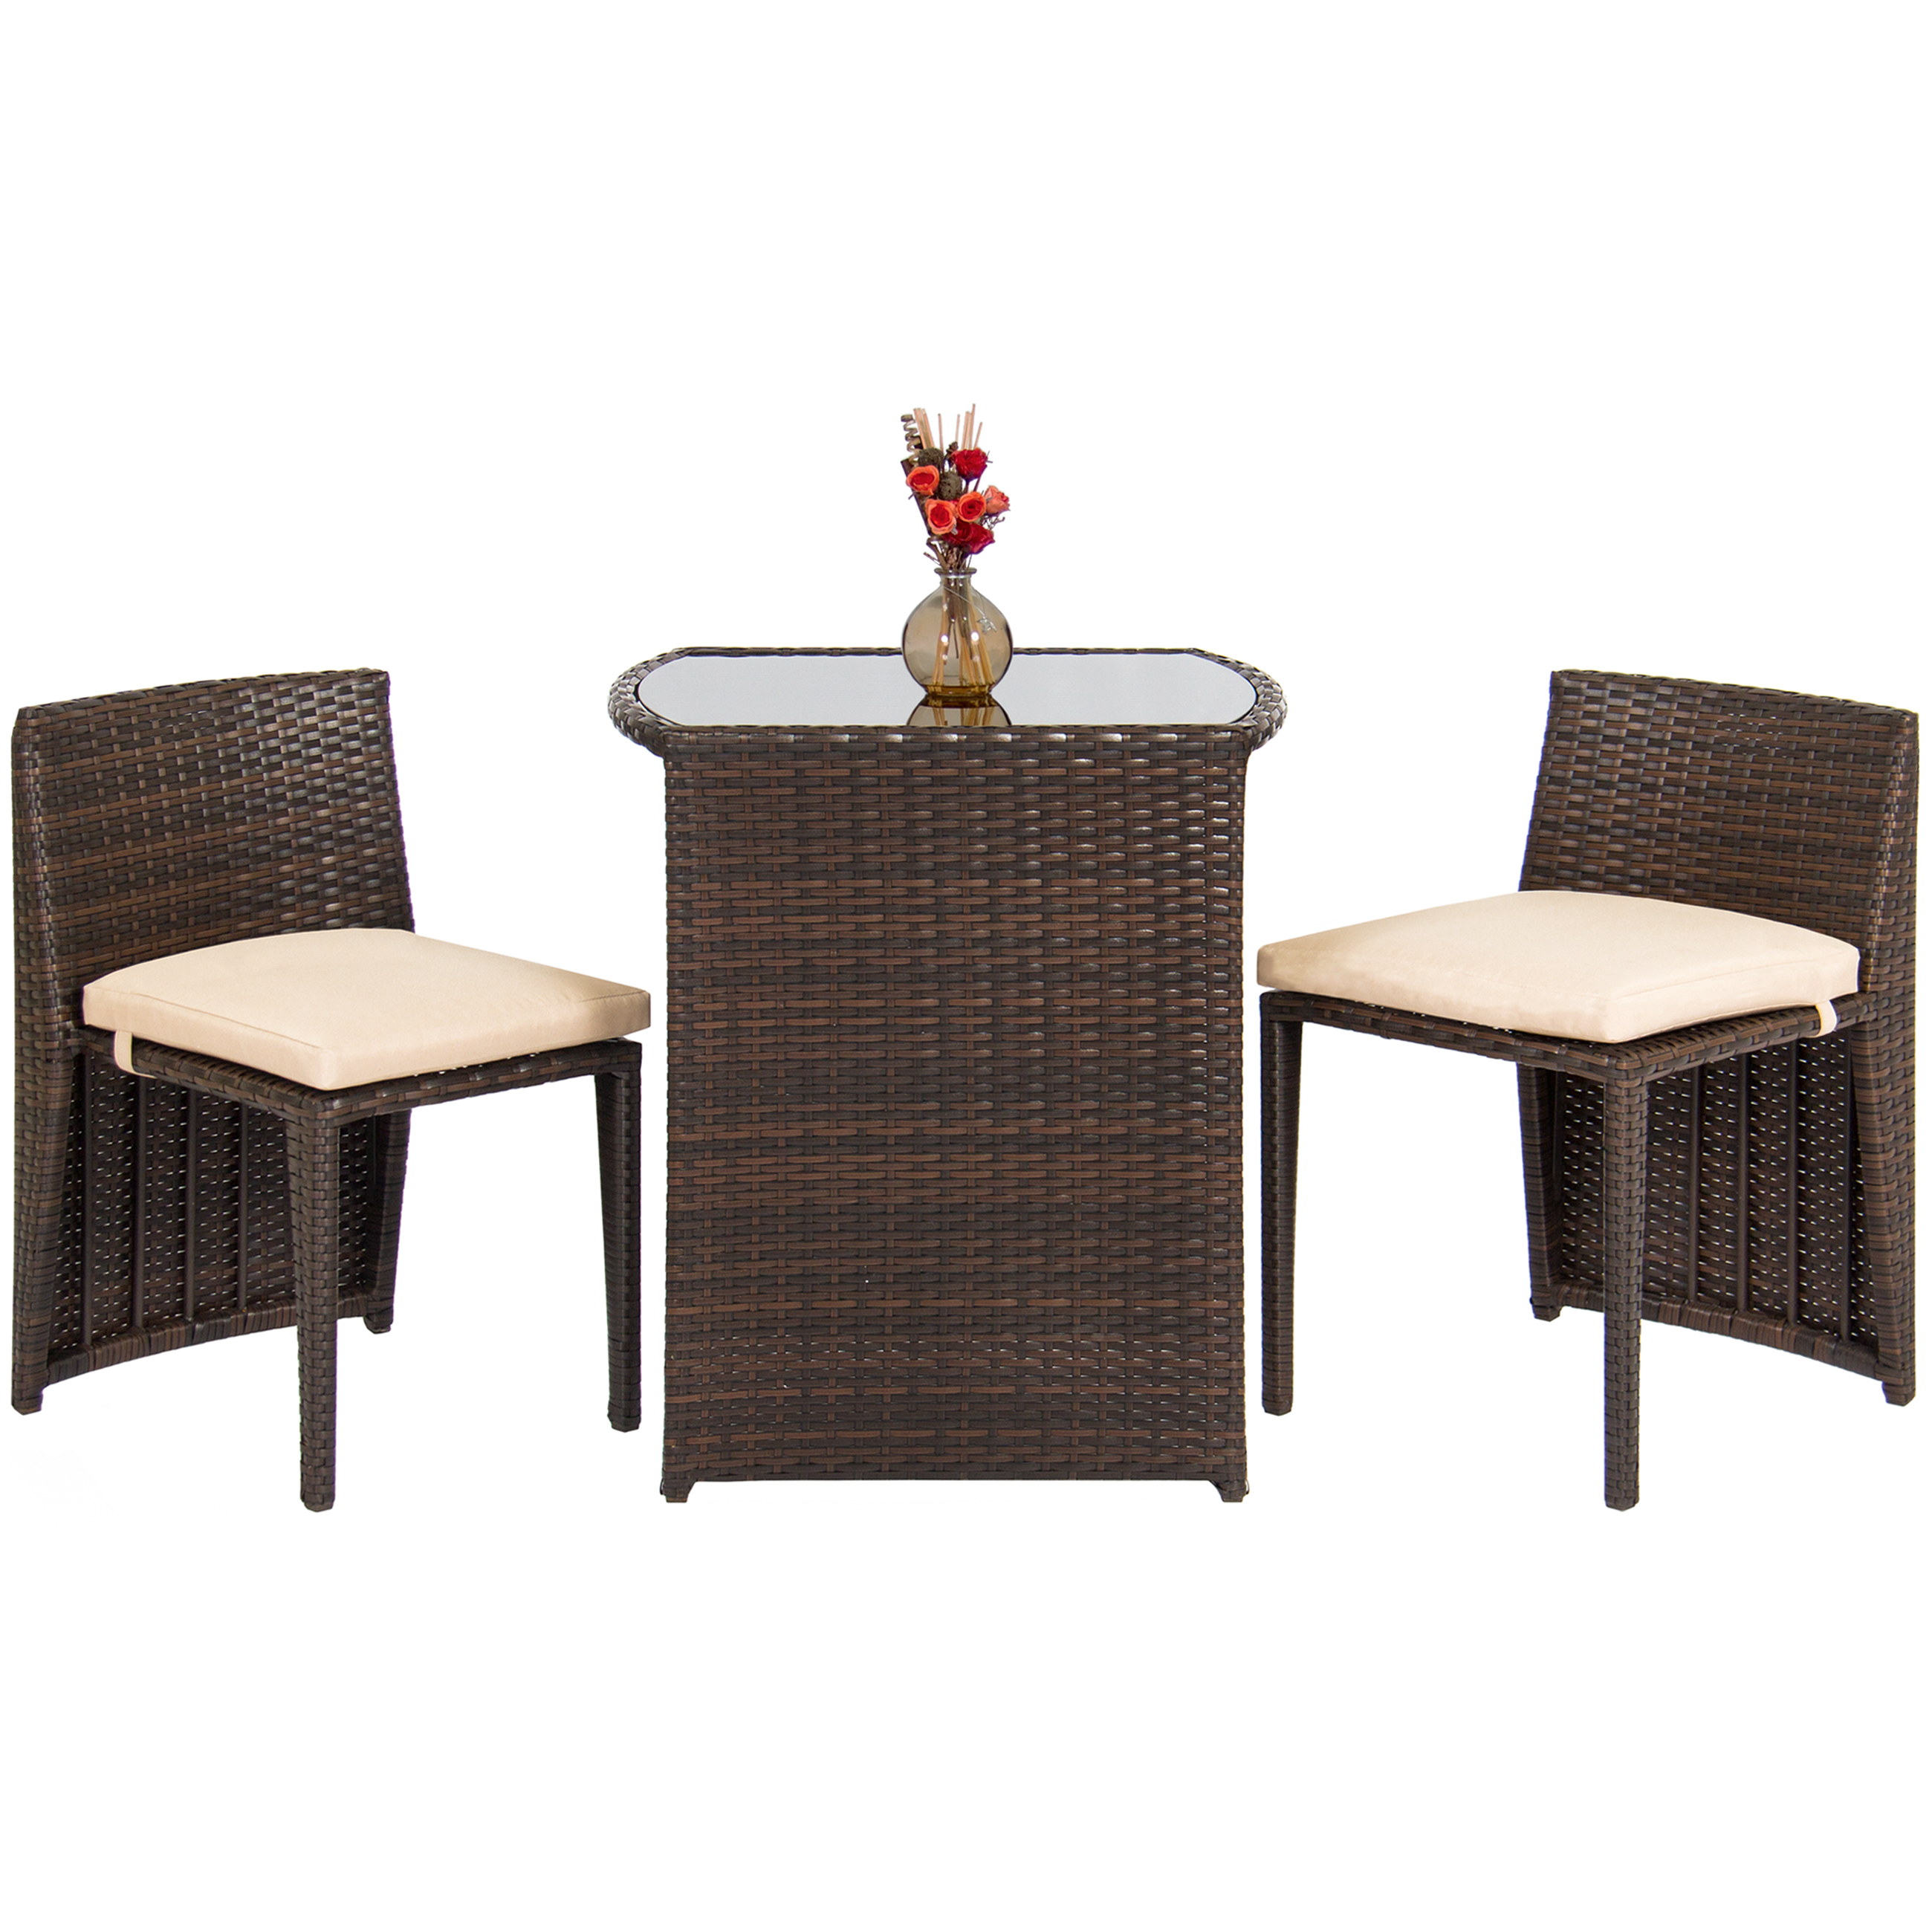 Best Choice Products 5pc Rattan Wicker Sofa Set Instructions Best Choice Products Wicker 3 Piece Space Saving Outdoor Bistro Set With Glass Table Top